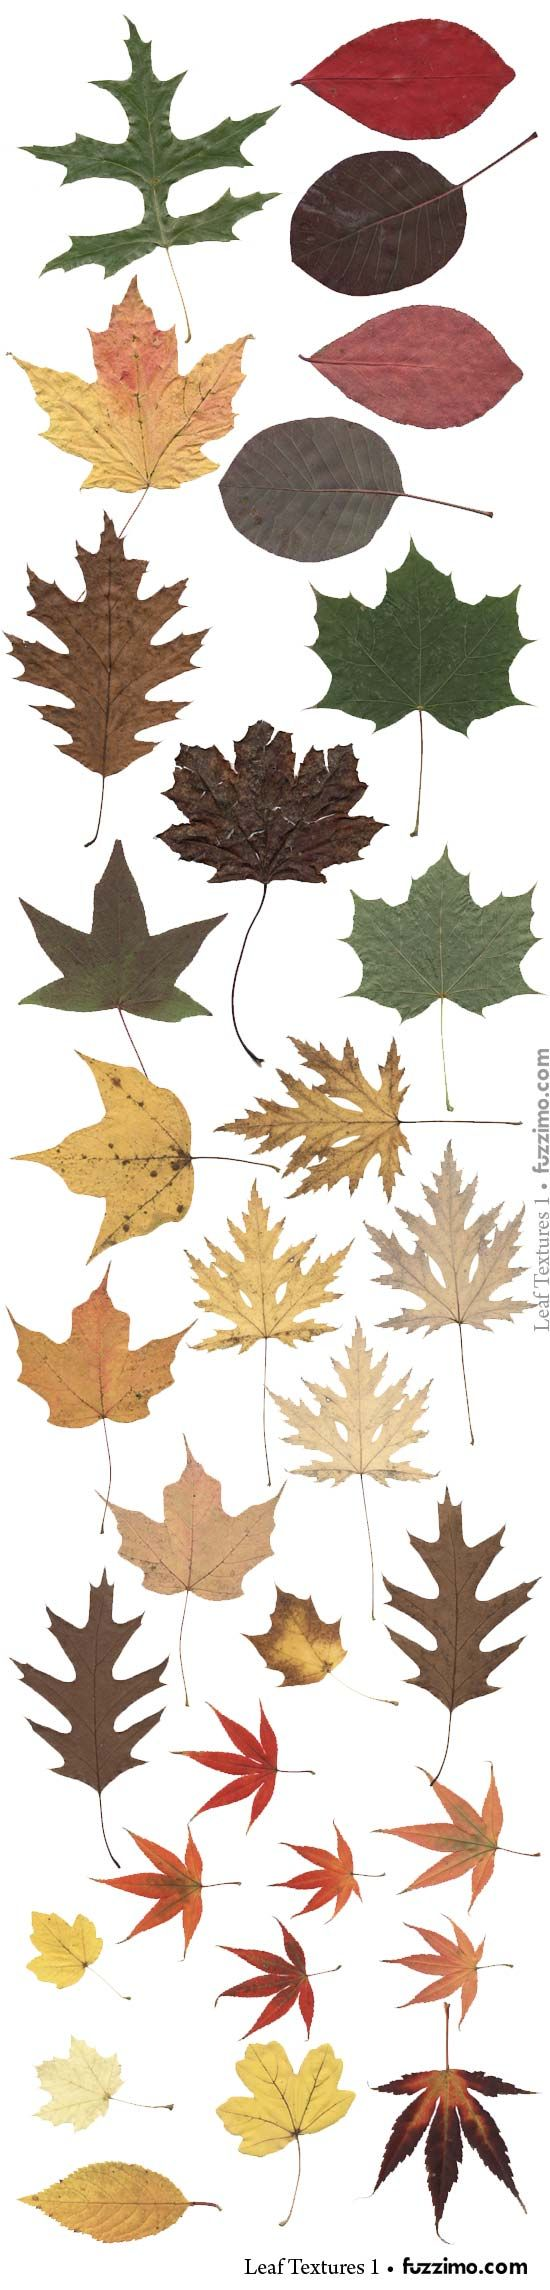 Free leaf vector images from Fuzzimo.comfzm-Leaf-Textures-02.jpg 550×2,290 pixels